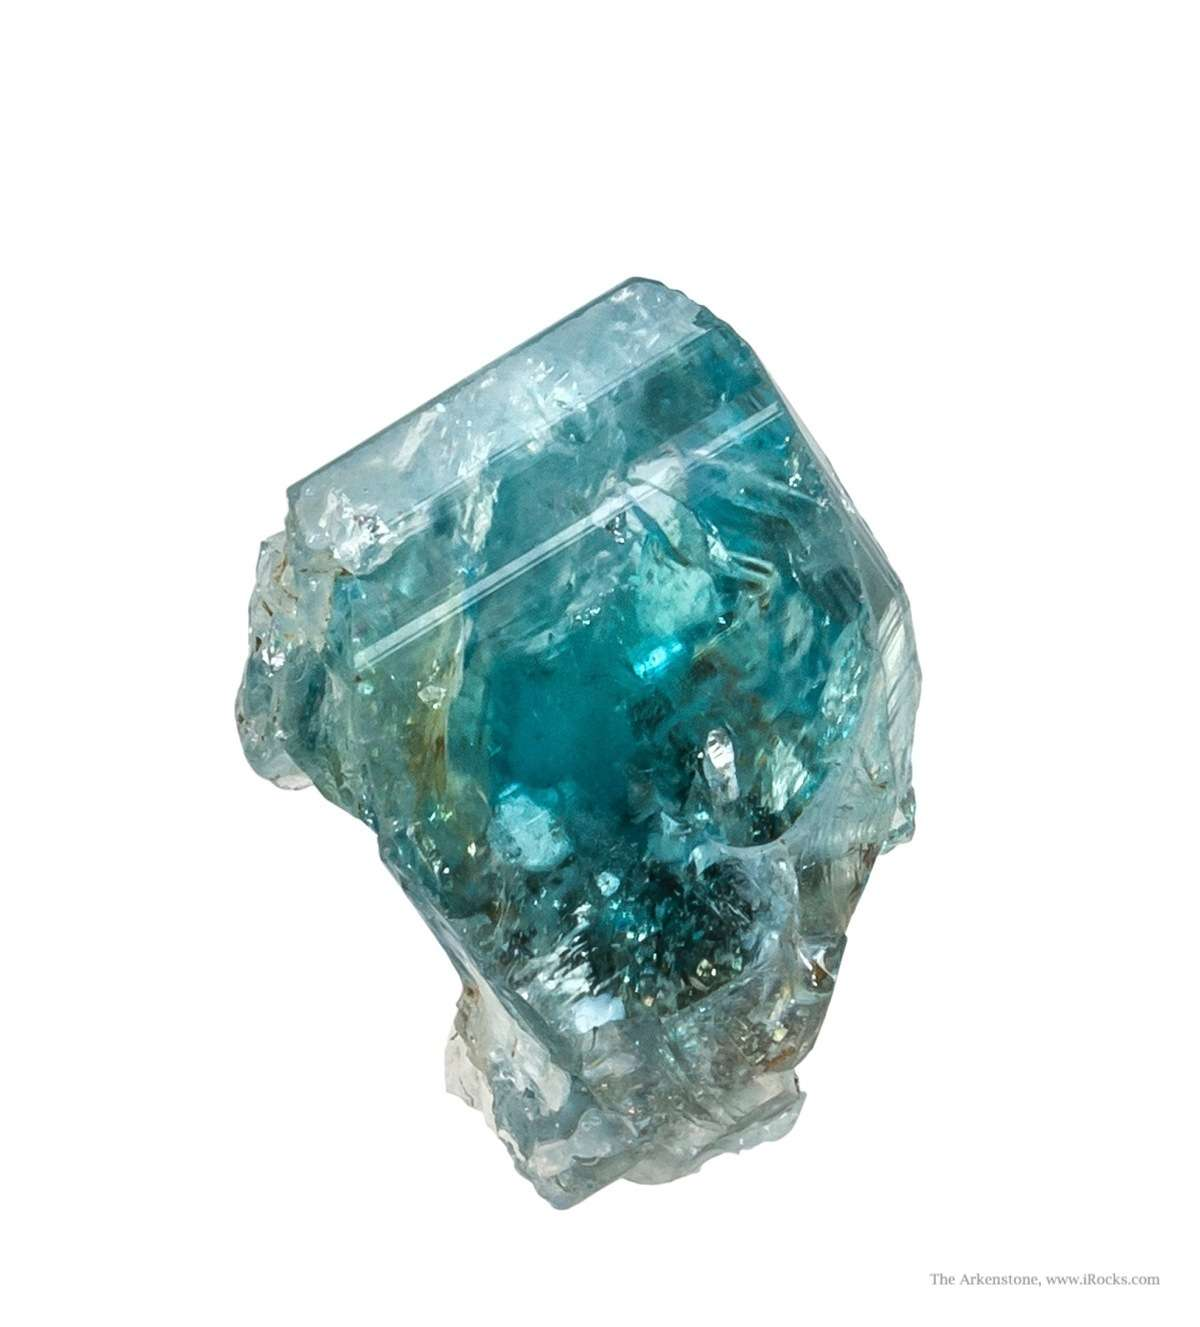 From near famous emerald mines glassy gemmy bright blue euclase